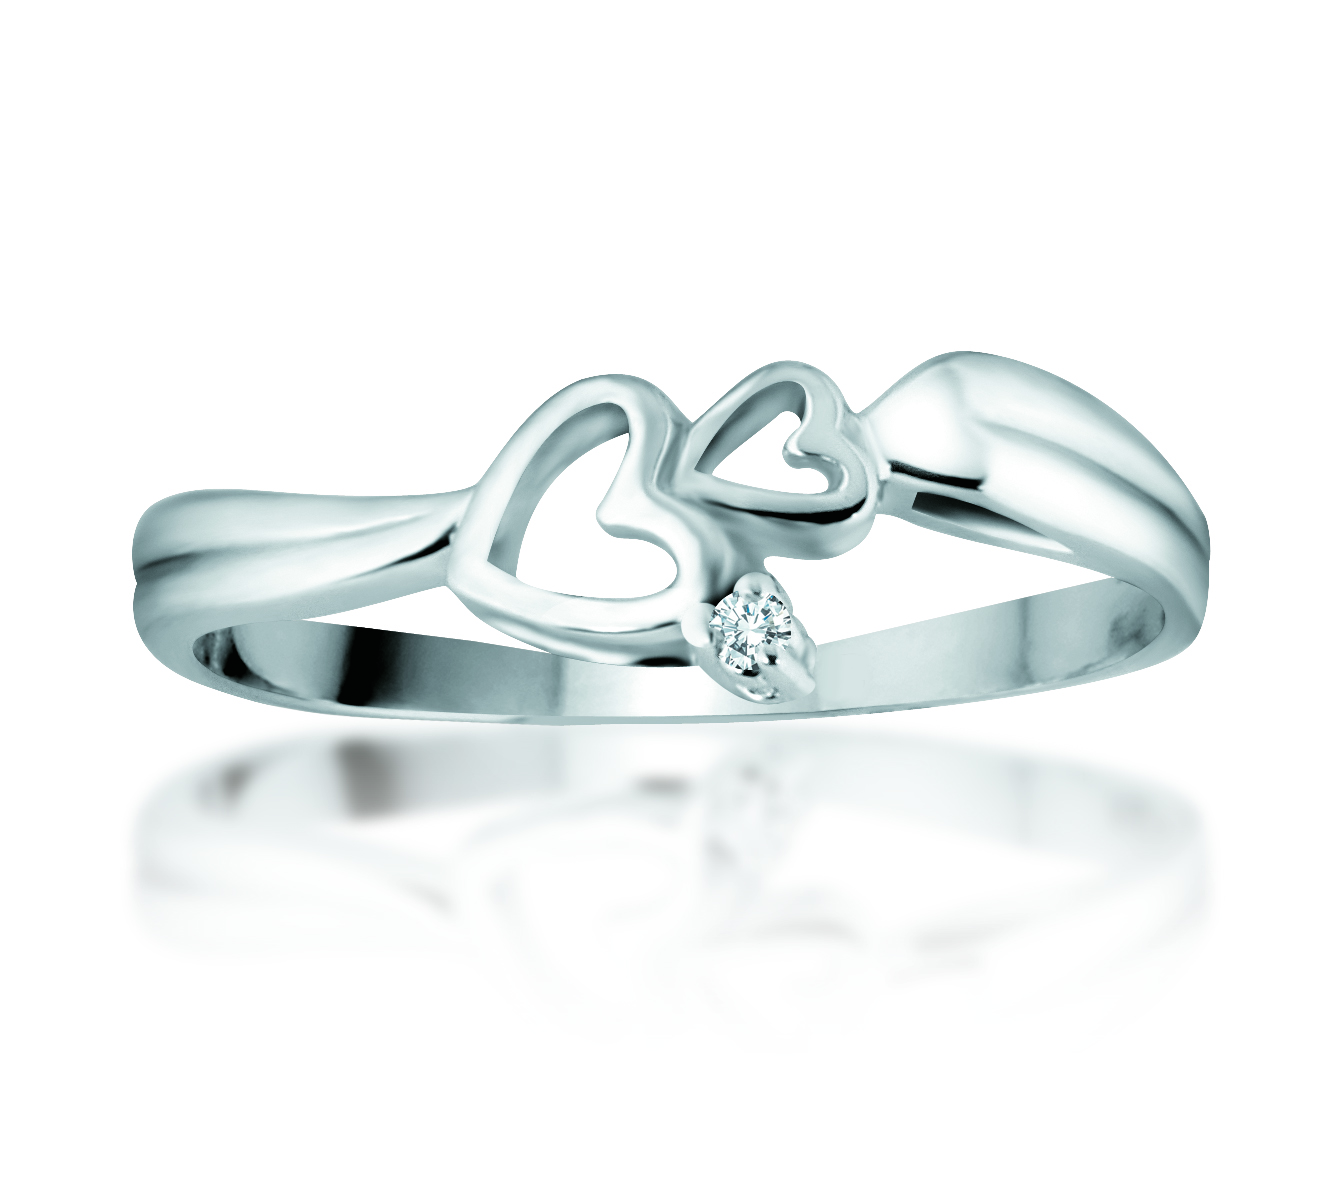 Heart ring - 10K white gold & Diamond